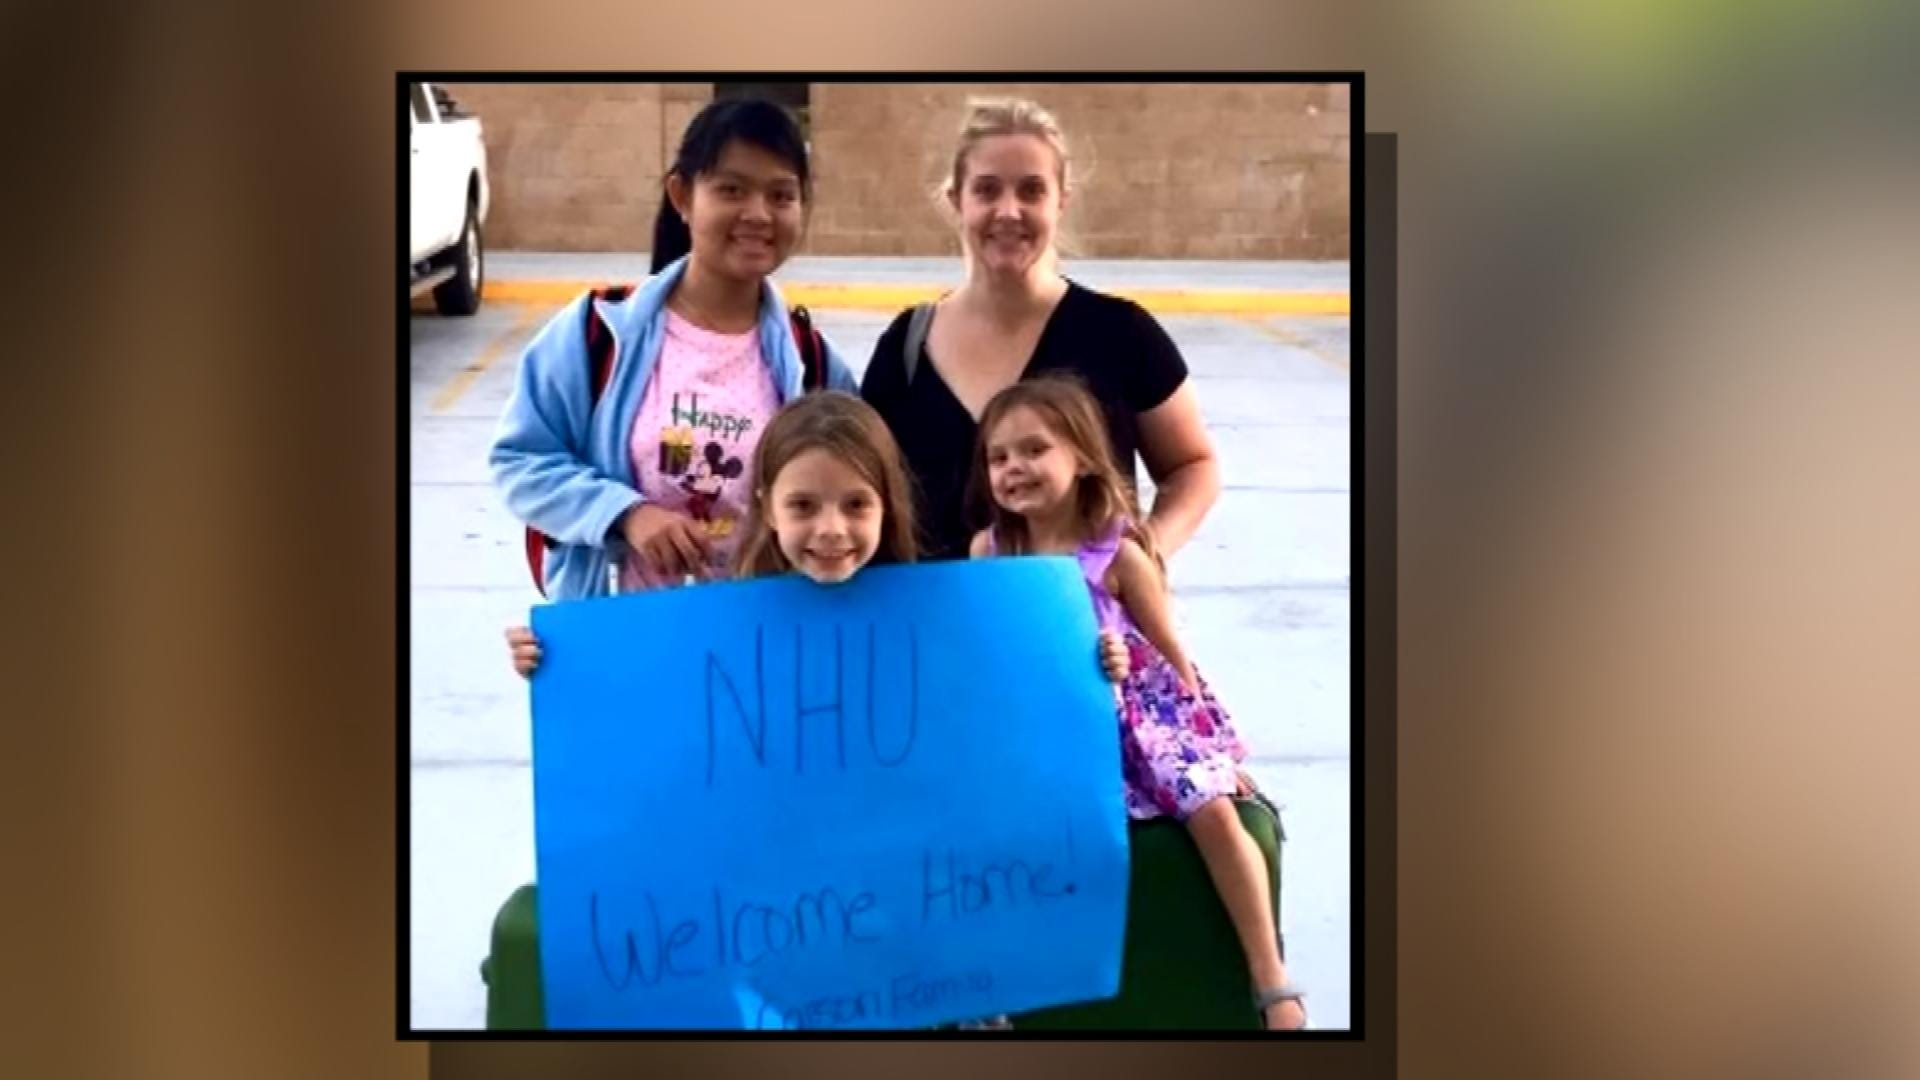 Husband Of Yukon Mother Killed By Drunk Driver Reacts To DUI Law Struck Down